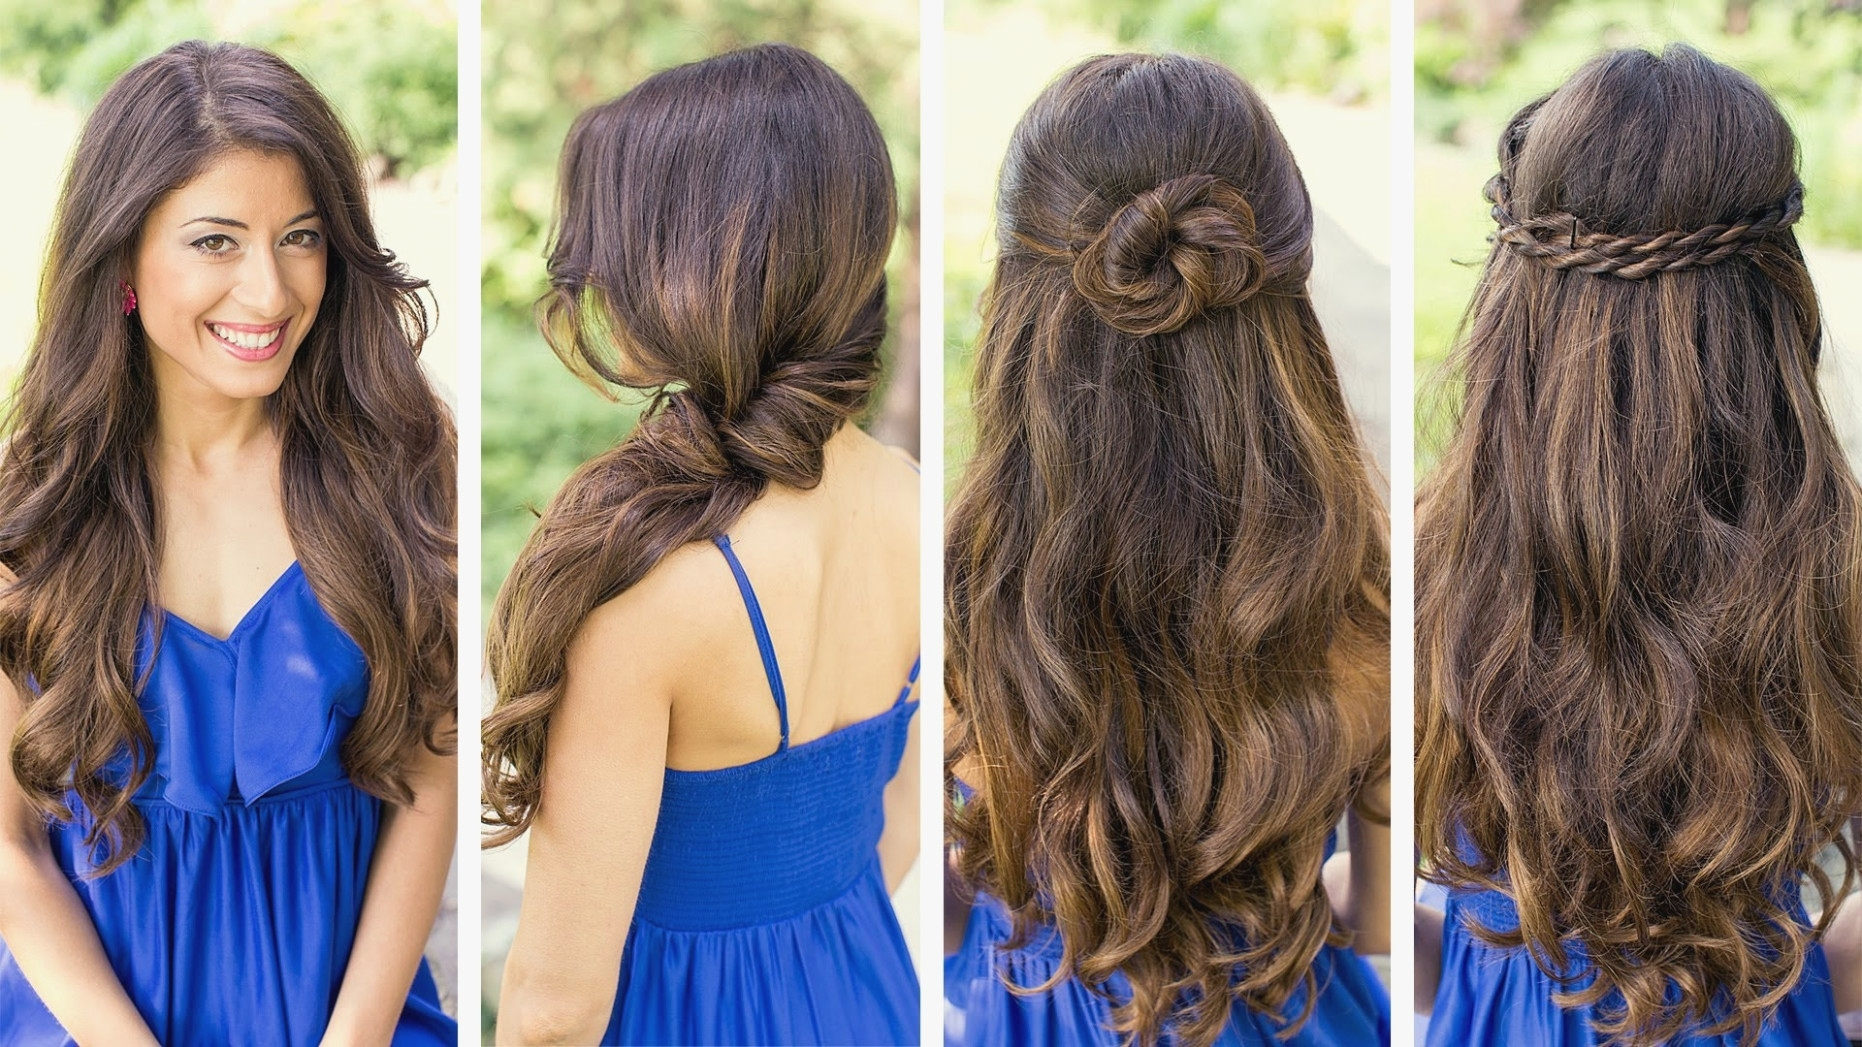 Maxresdefault | Medium Hair Styles Ideas - 10 - Hairstyle For Curly within Haircut For Curly Rough Hair